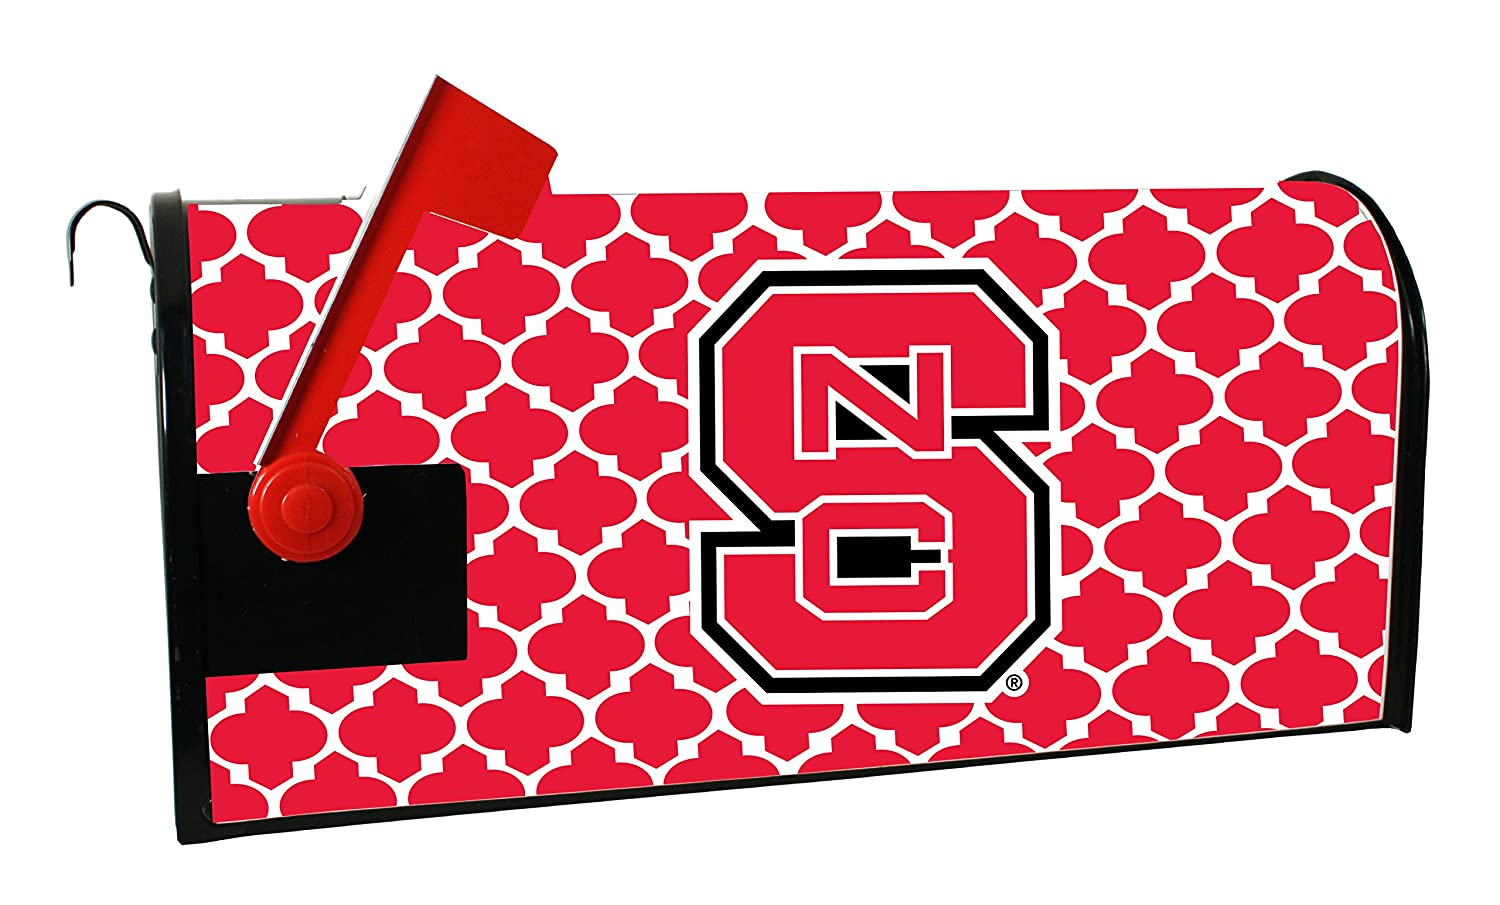 NC State Wolfpackメールボックスcover-north Carolina State University磁気メールボックスcover-moroccanデザイン B00WT4D6CE